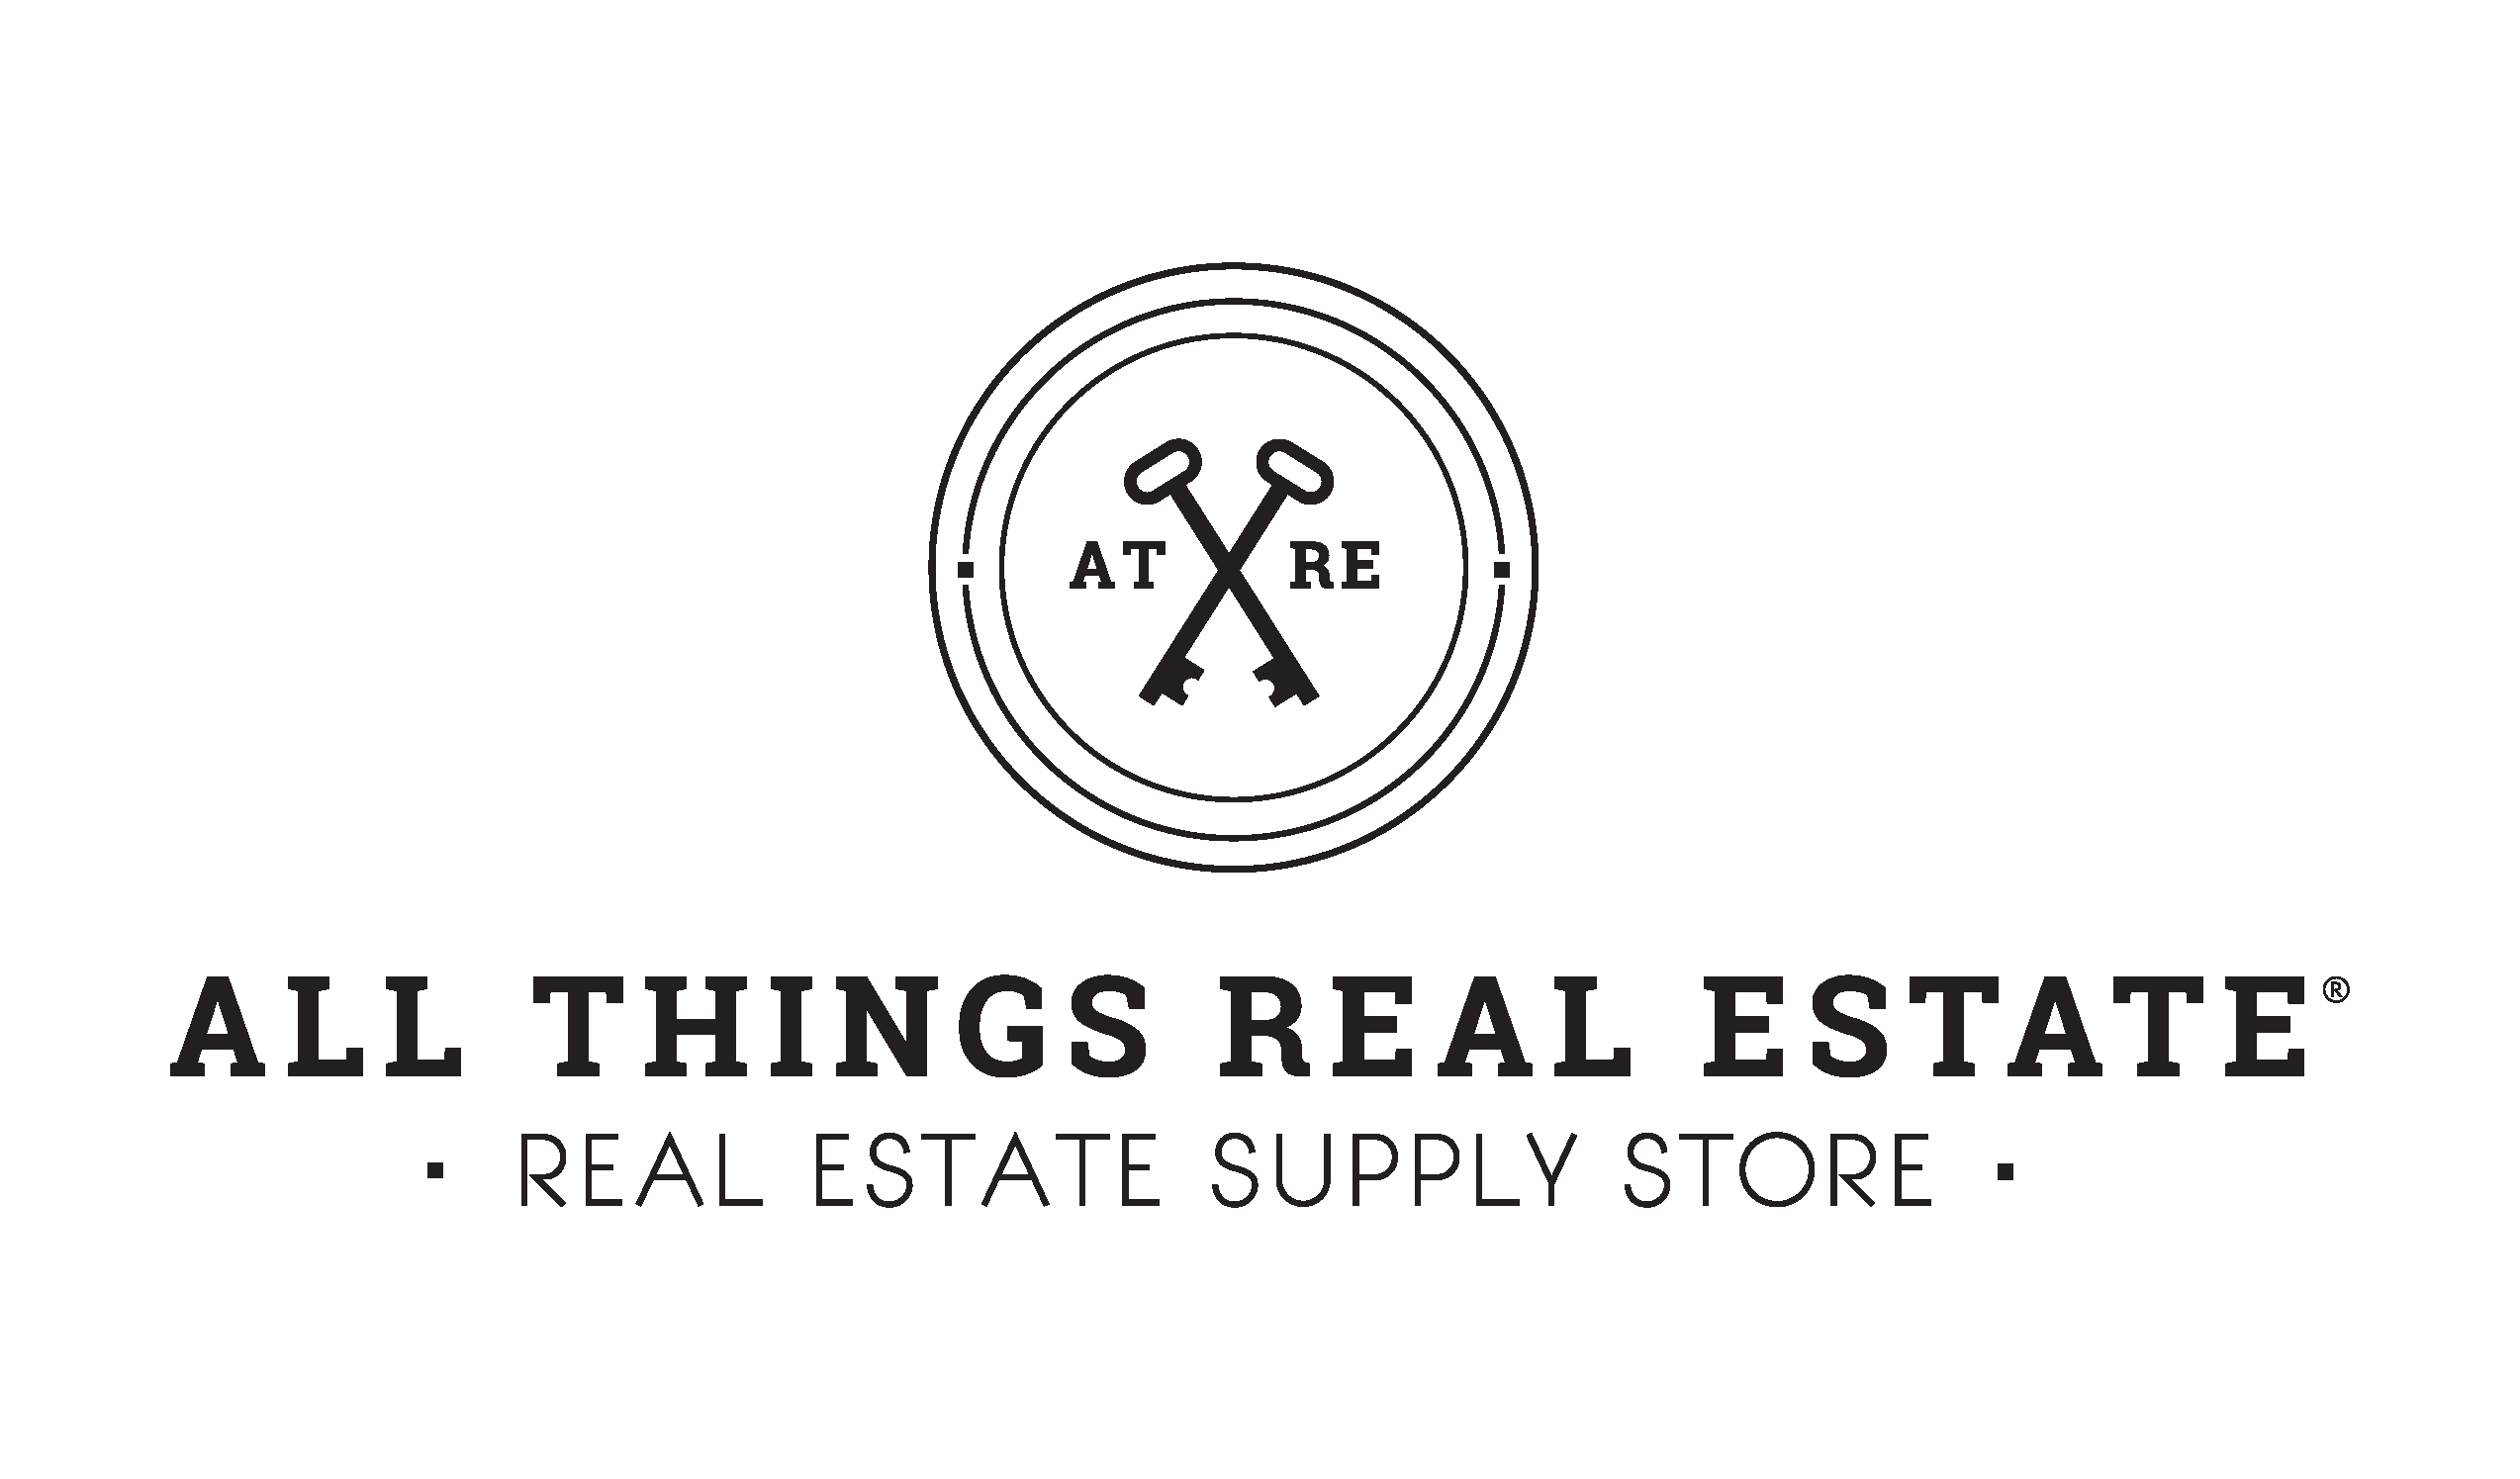 ALL THINGS REAL ESTATE: Custom Testimonial Prop™